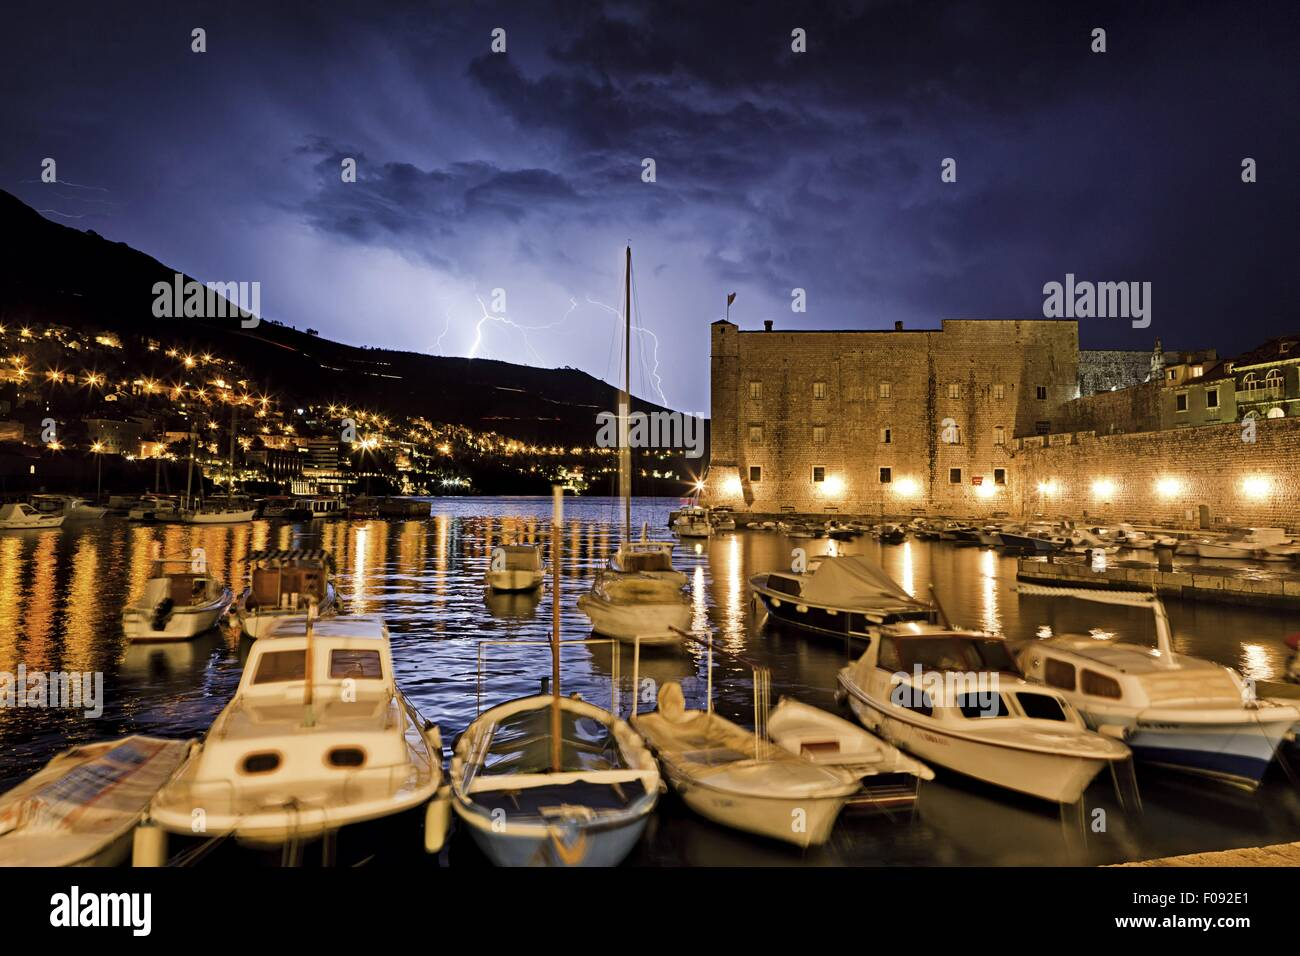 Boats moored on Dubrovnik old harbour with thunderstorm at night in Croatia Stock Photo